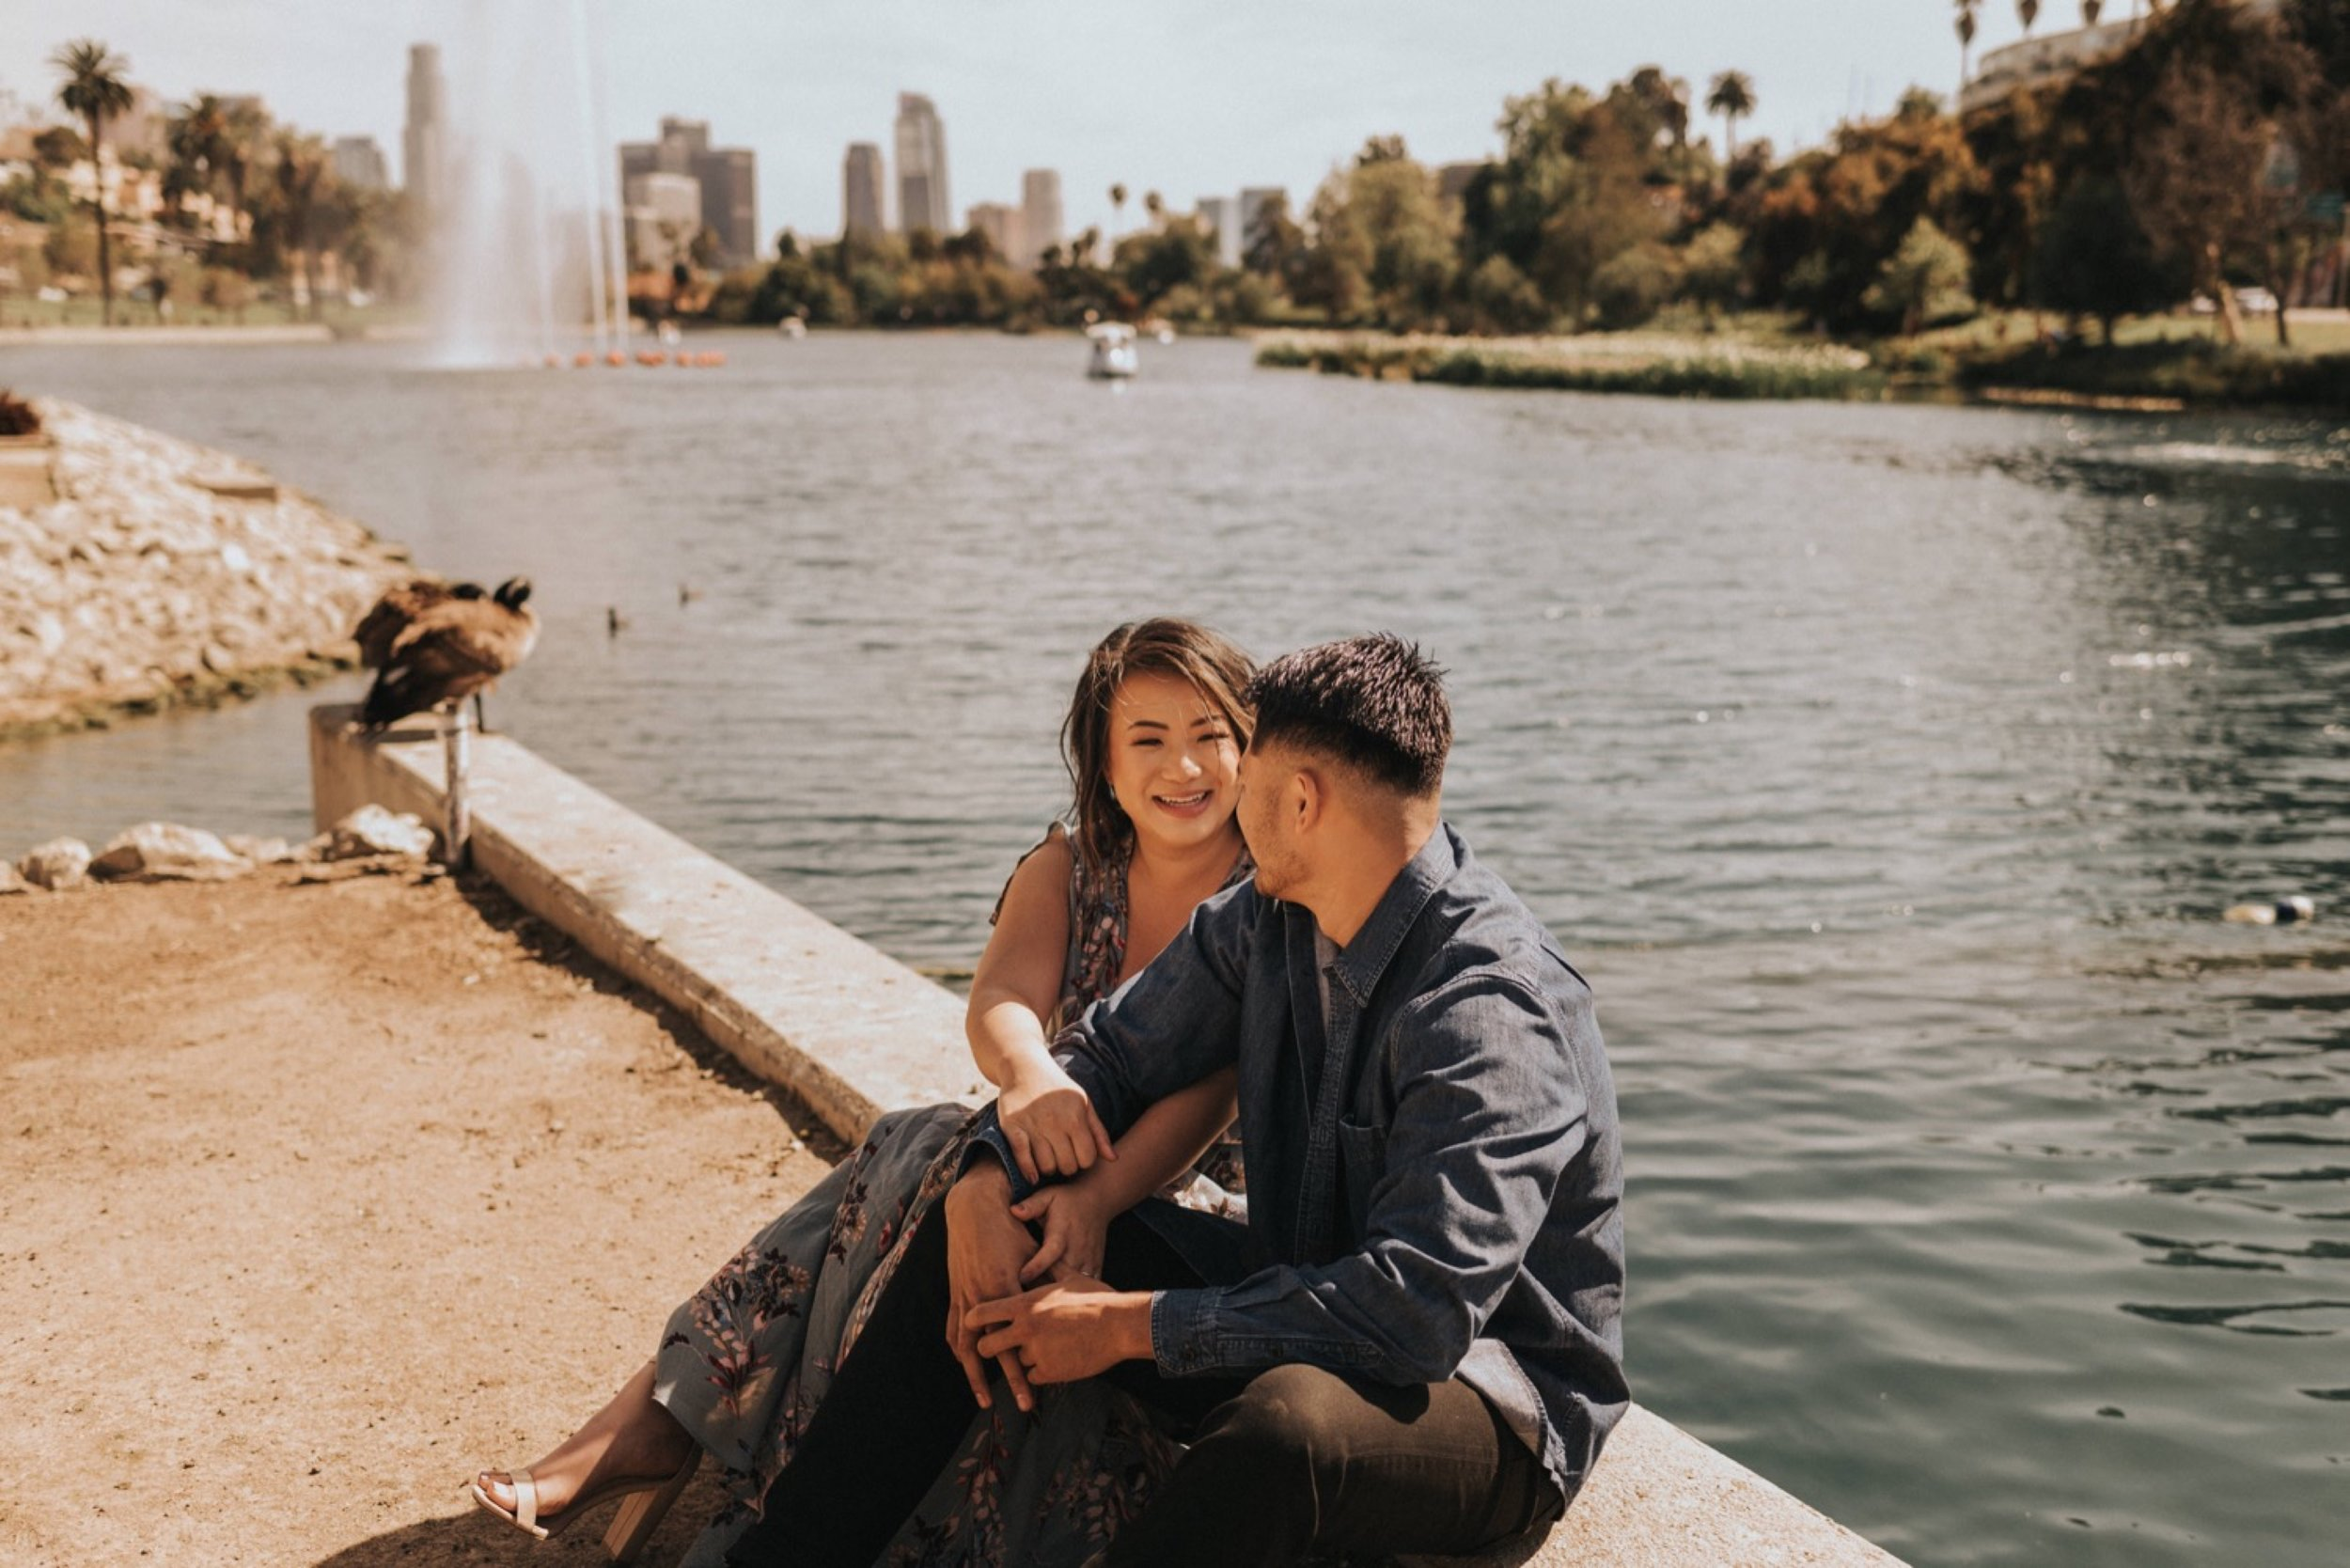 Echo Park Lake Engagement Session | Los Angeles Engagement Session | Carrie Rogers Photography | Los Angeles Wedding Photographer | #couples #engagement #weddingphotography